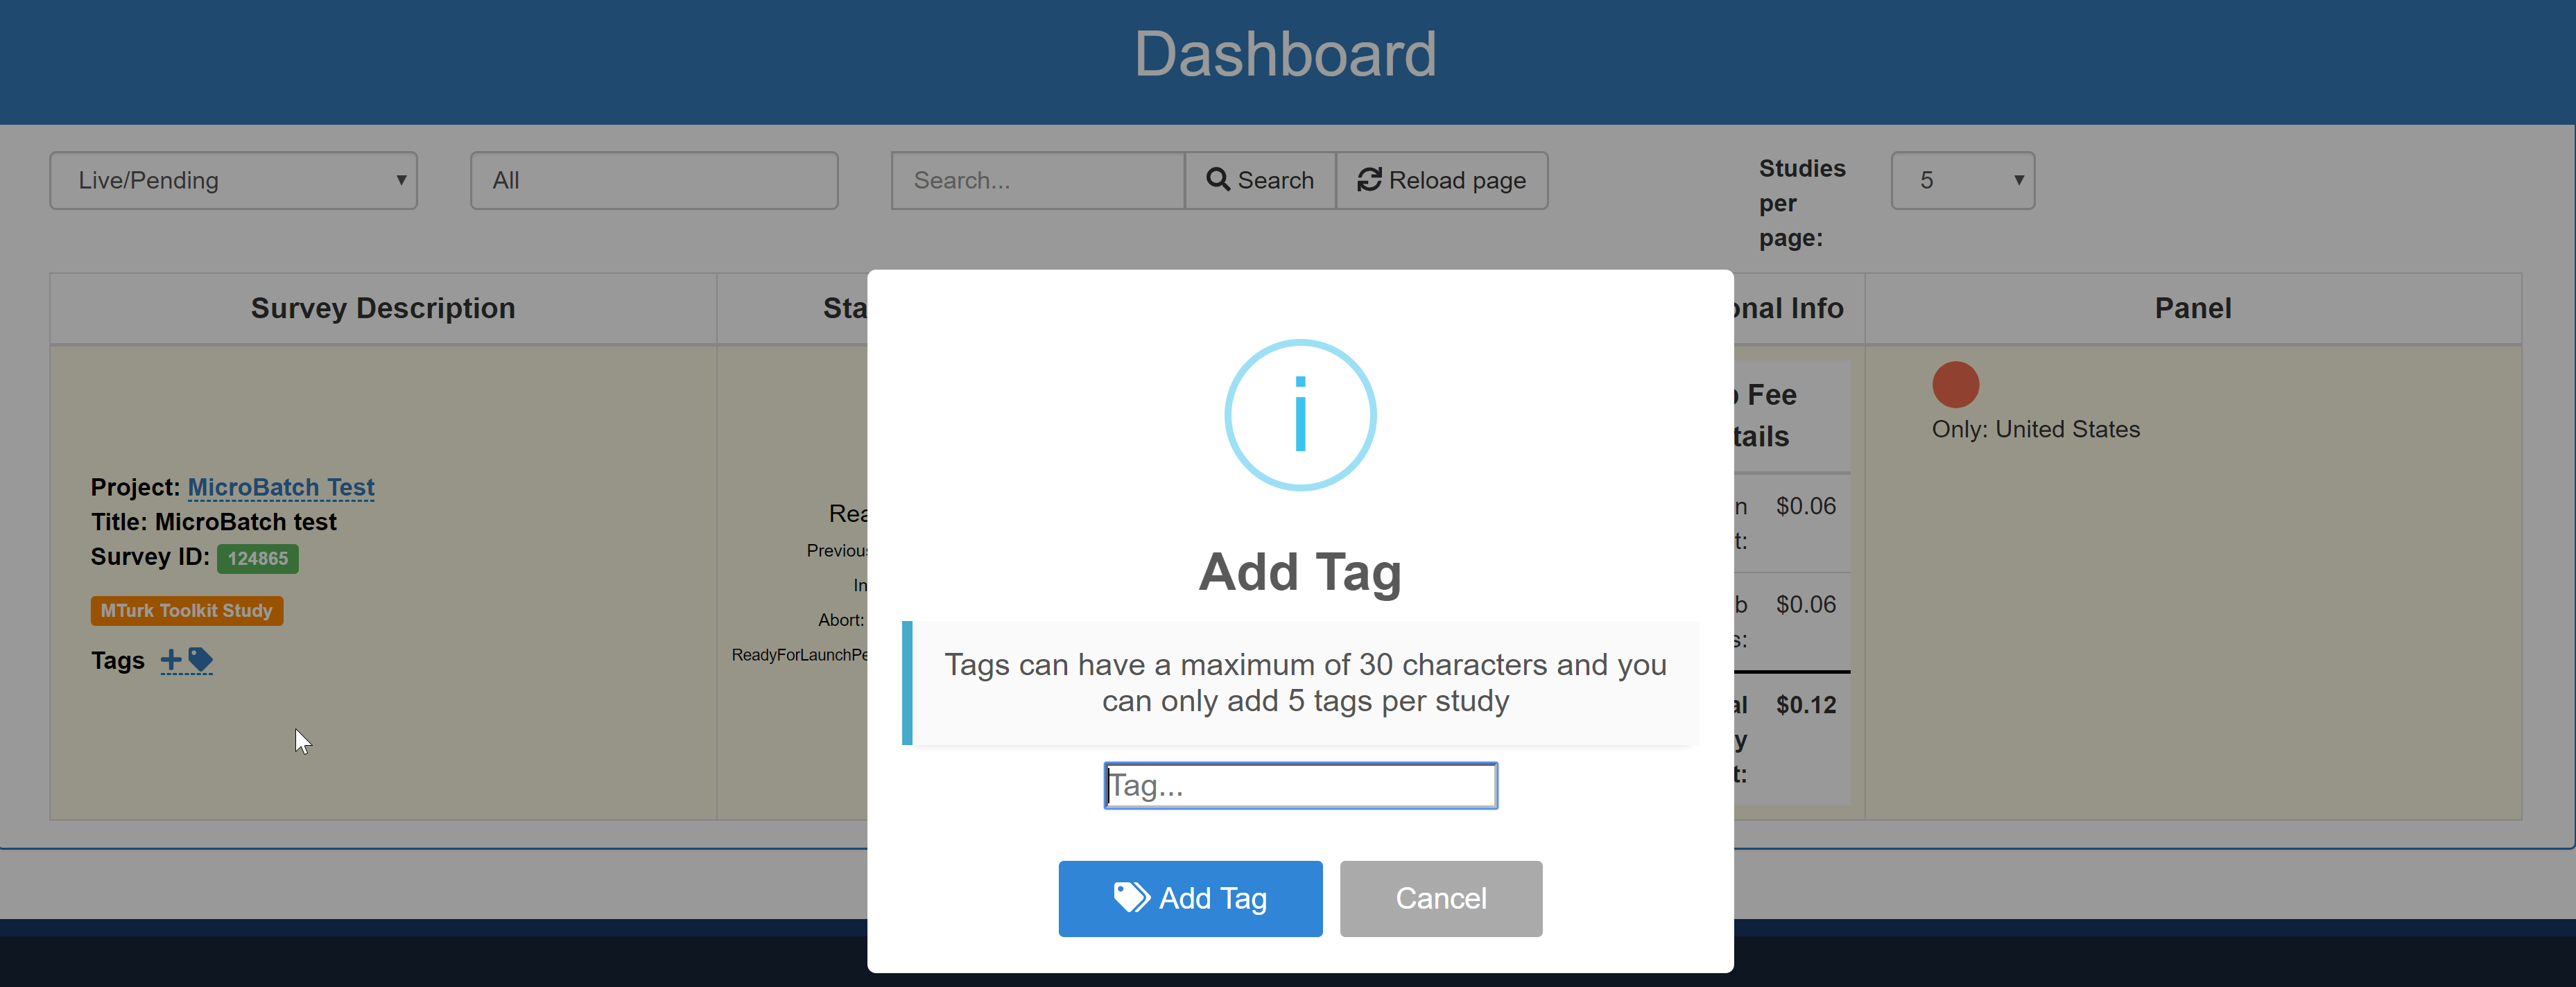 How to Add Tags on TurkPrime Dashboard